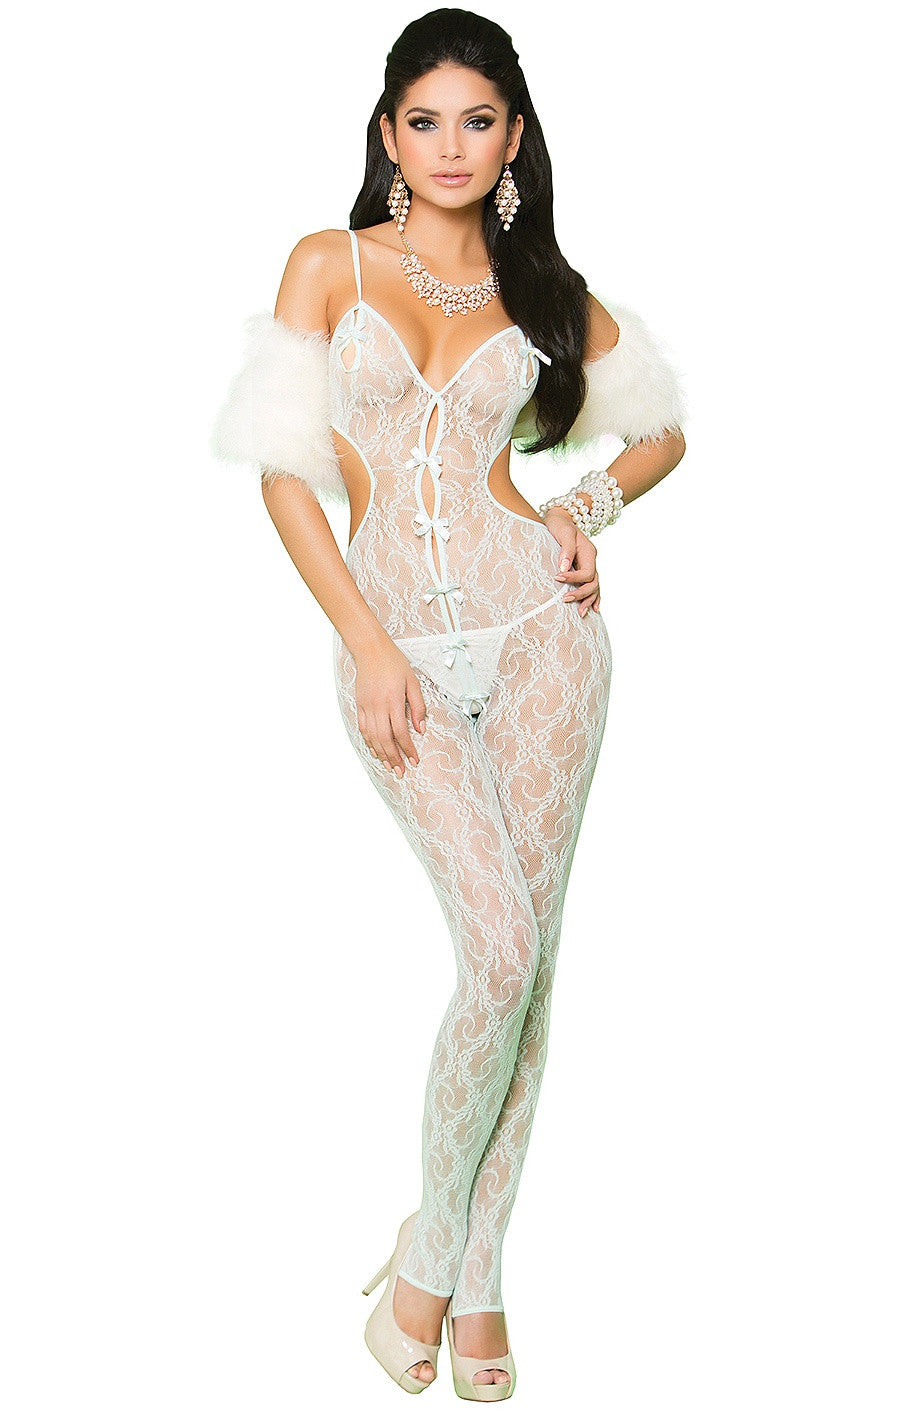 EM-81227 Glam mint green bodystocking - Sexylingerieland  - 1